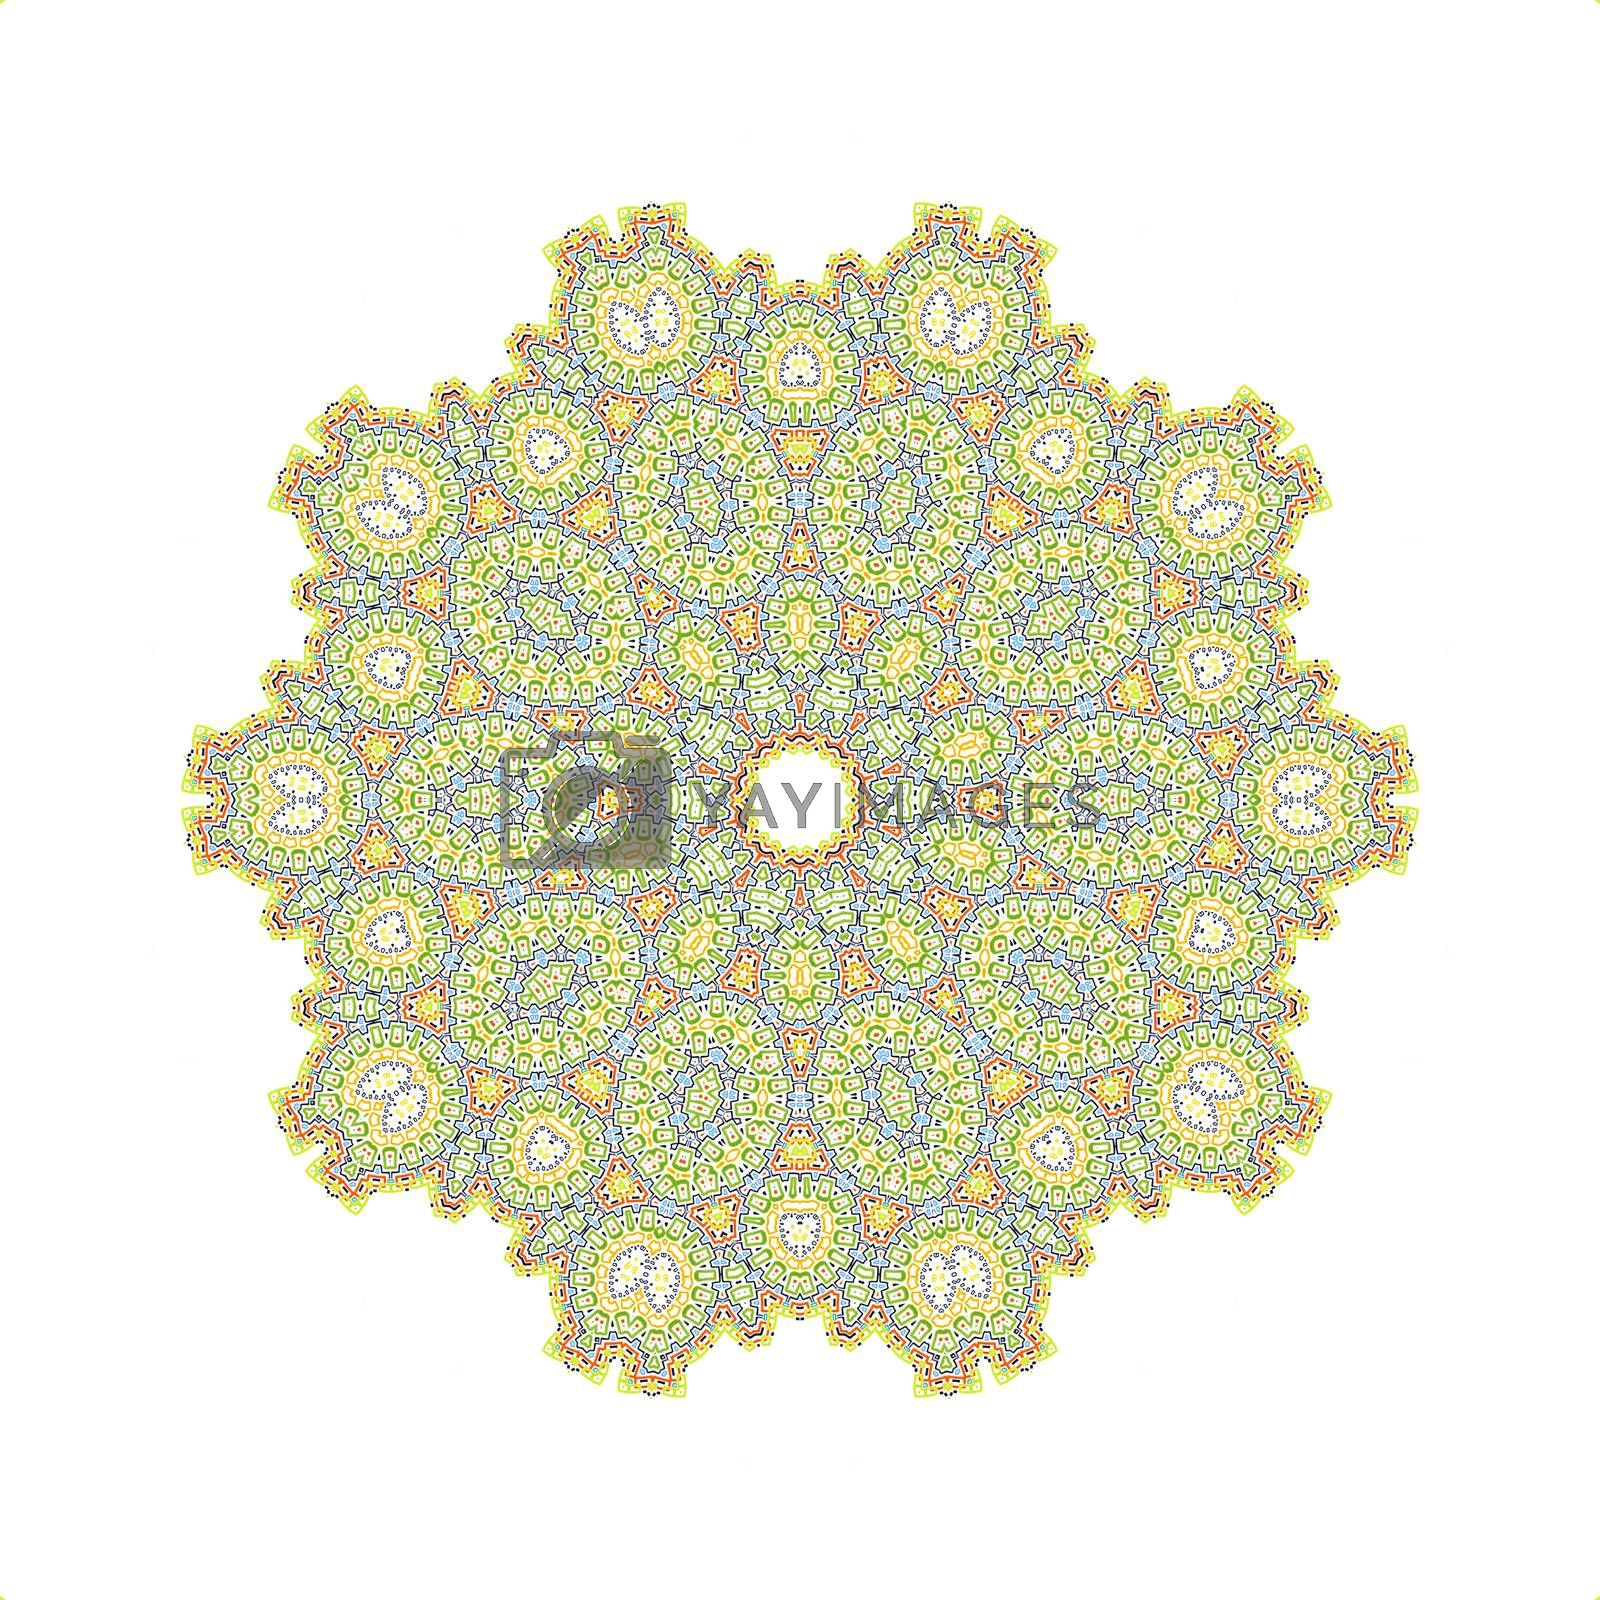 Color concentric design element on white background